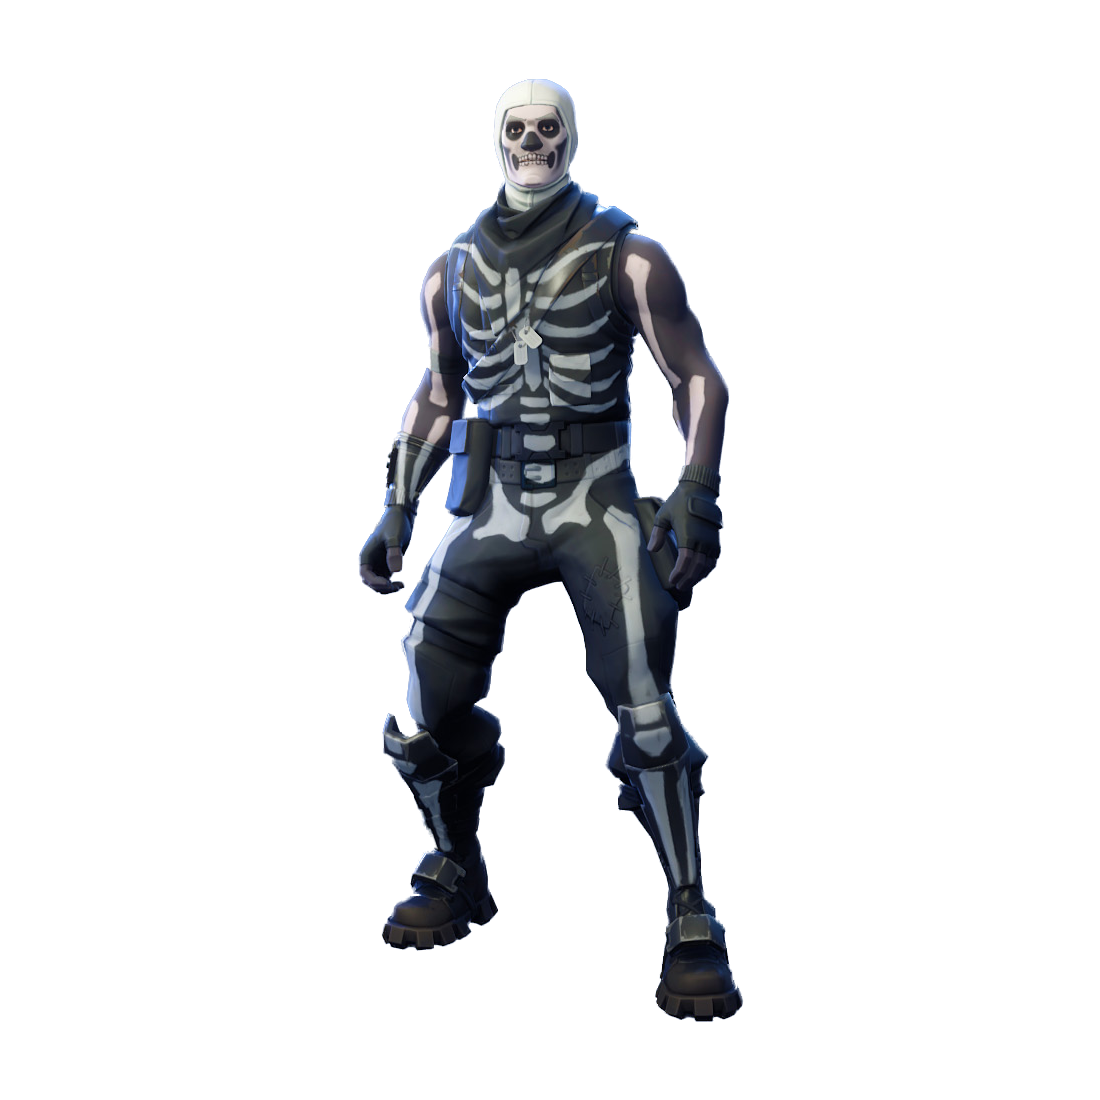 skull trooper clipart